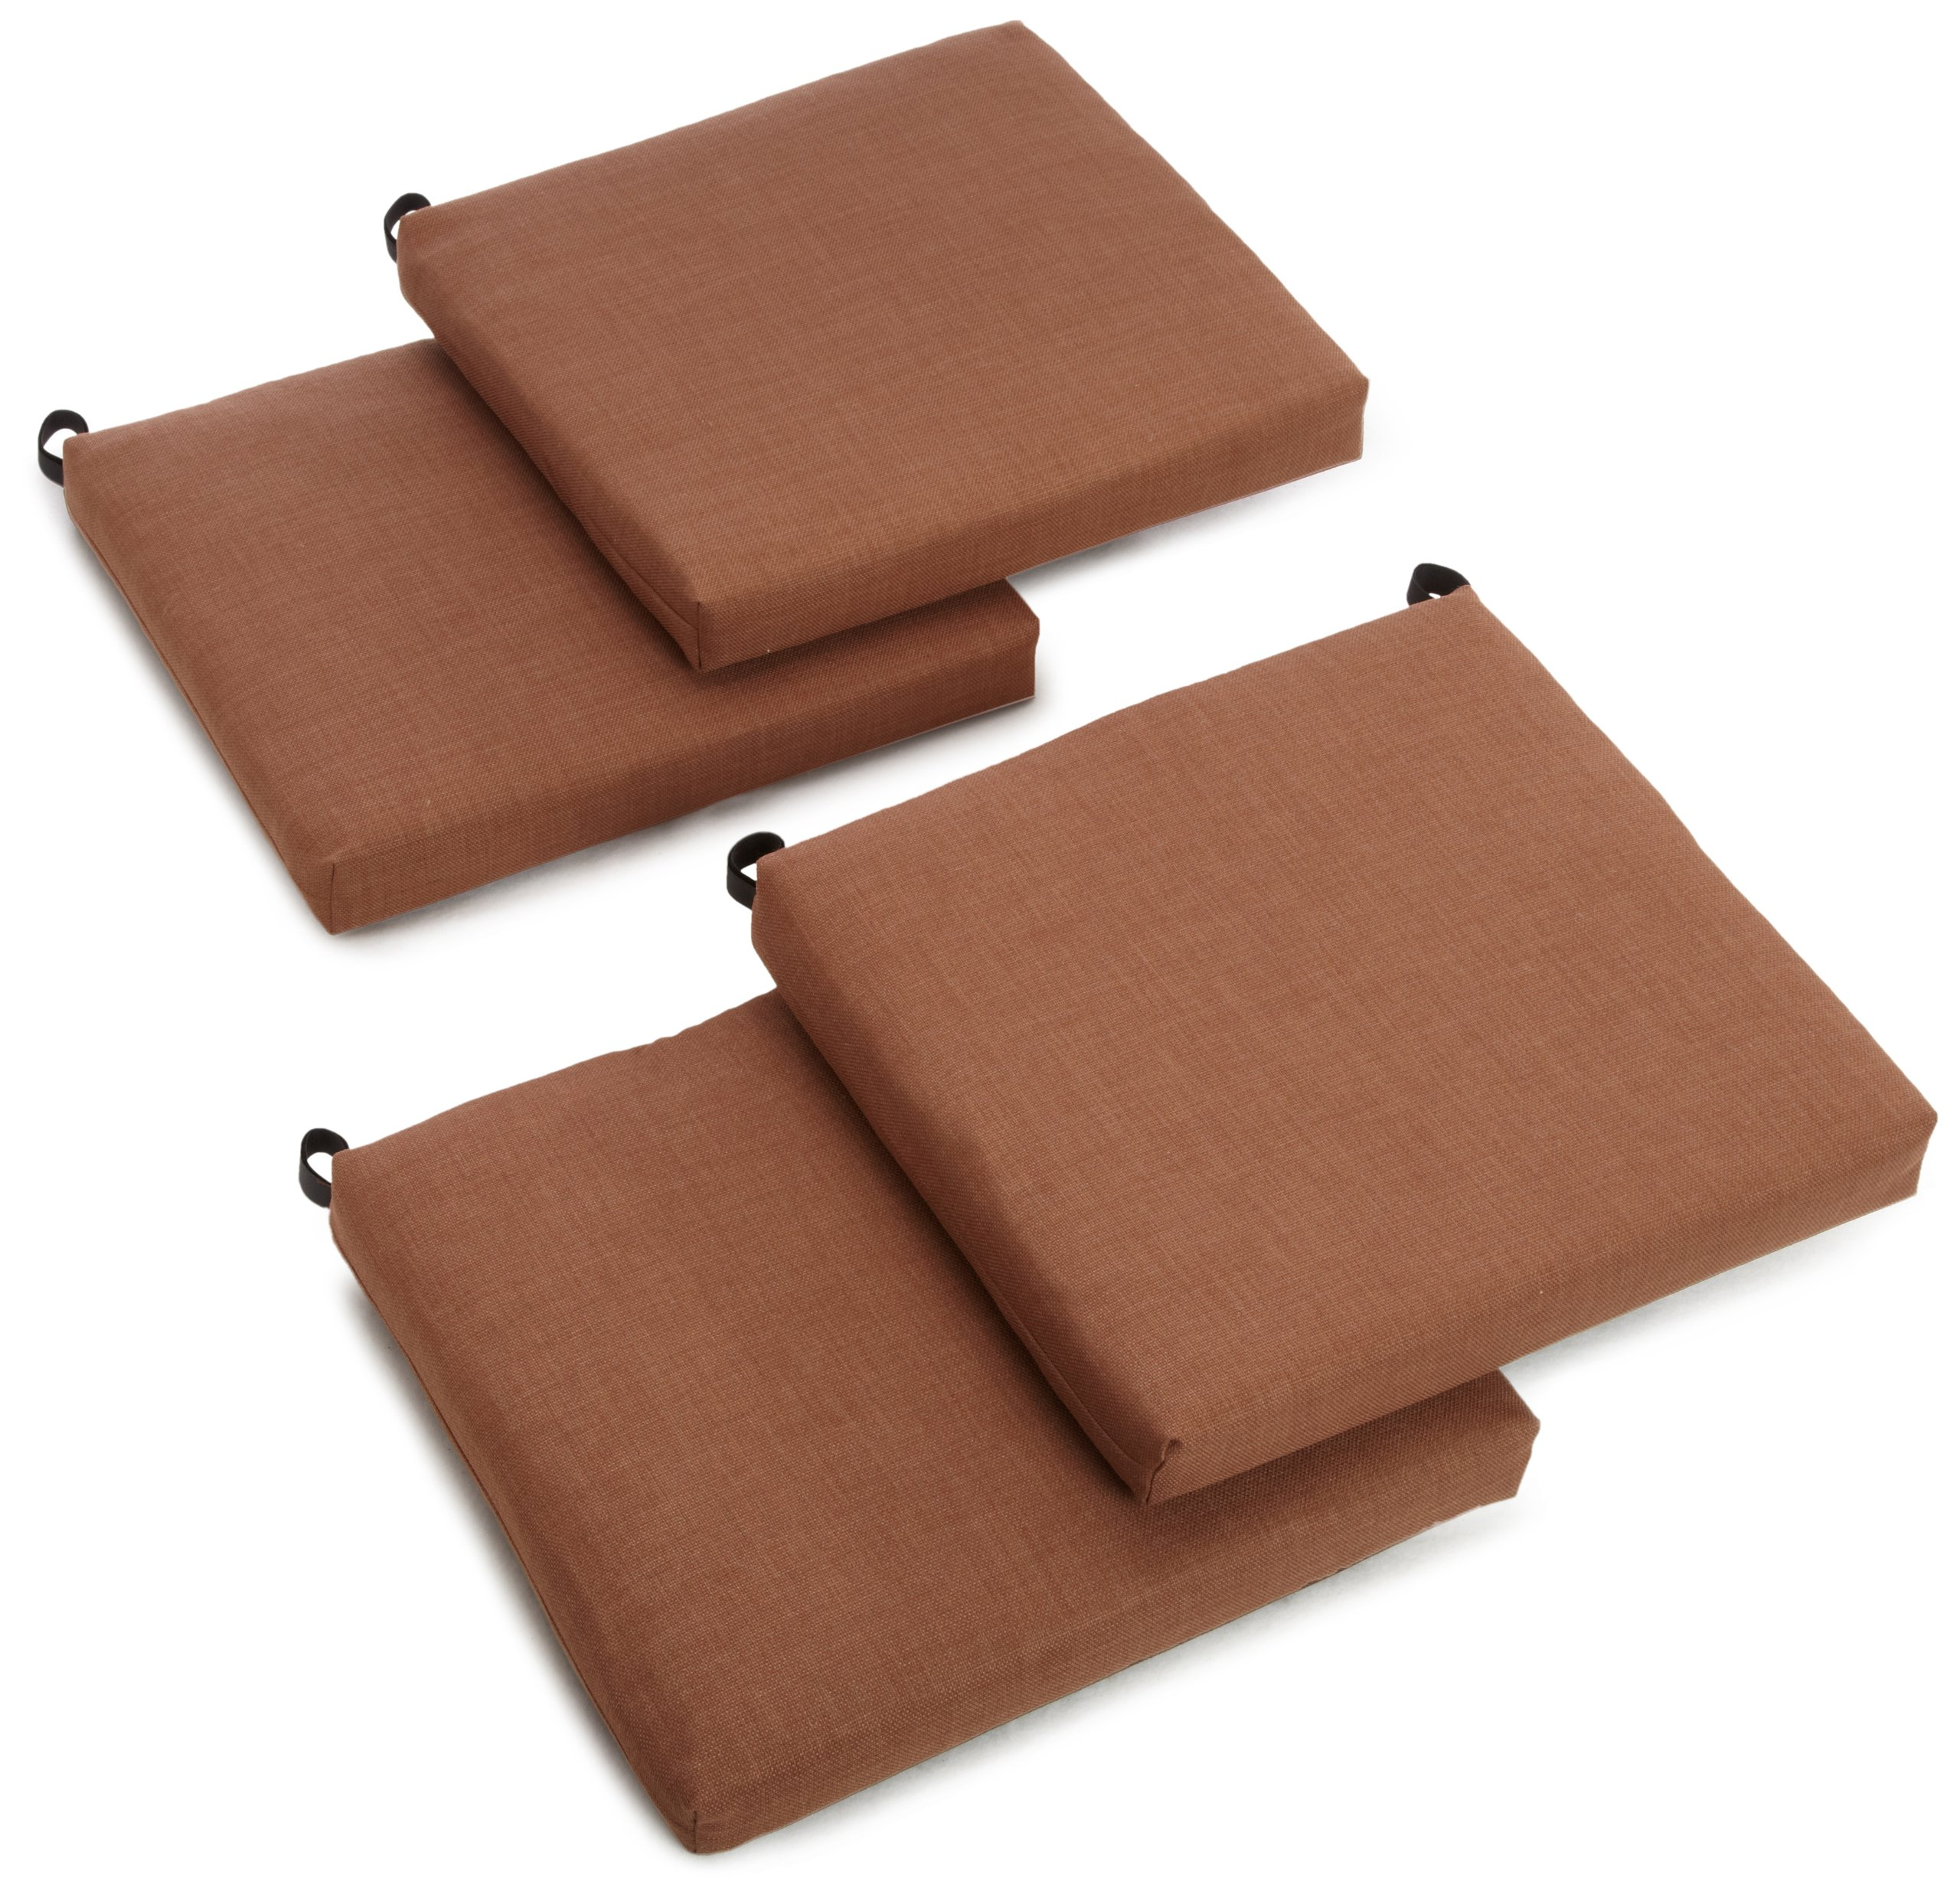 Blazing Needles Outdoor Spun Poly 19-Inch by 20-Inch by 3-1/2-Inch All Weather UV Resistant Zippered Cushions, Mocha, Set of 4